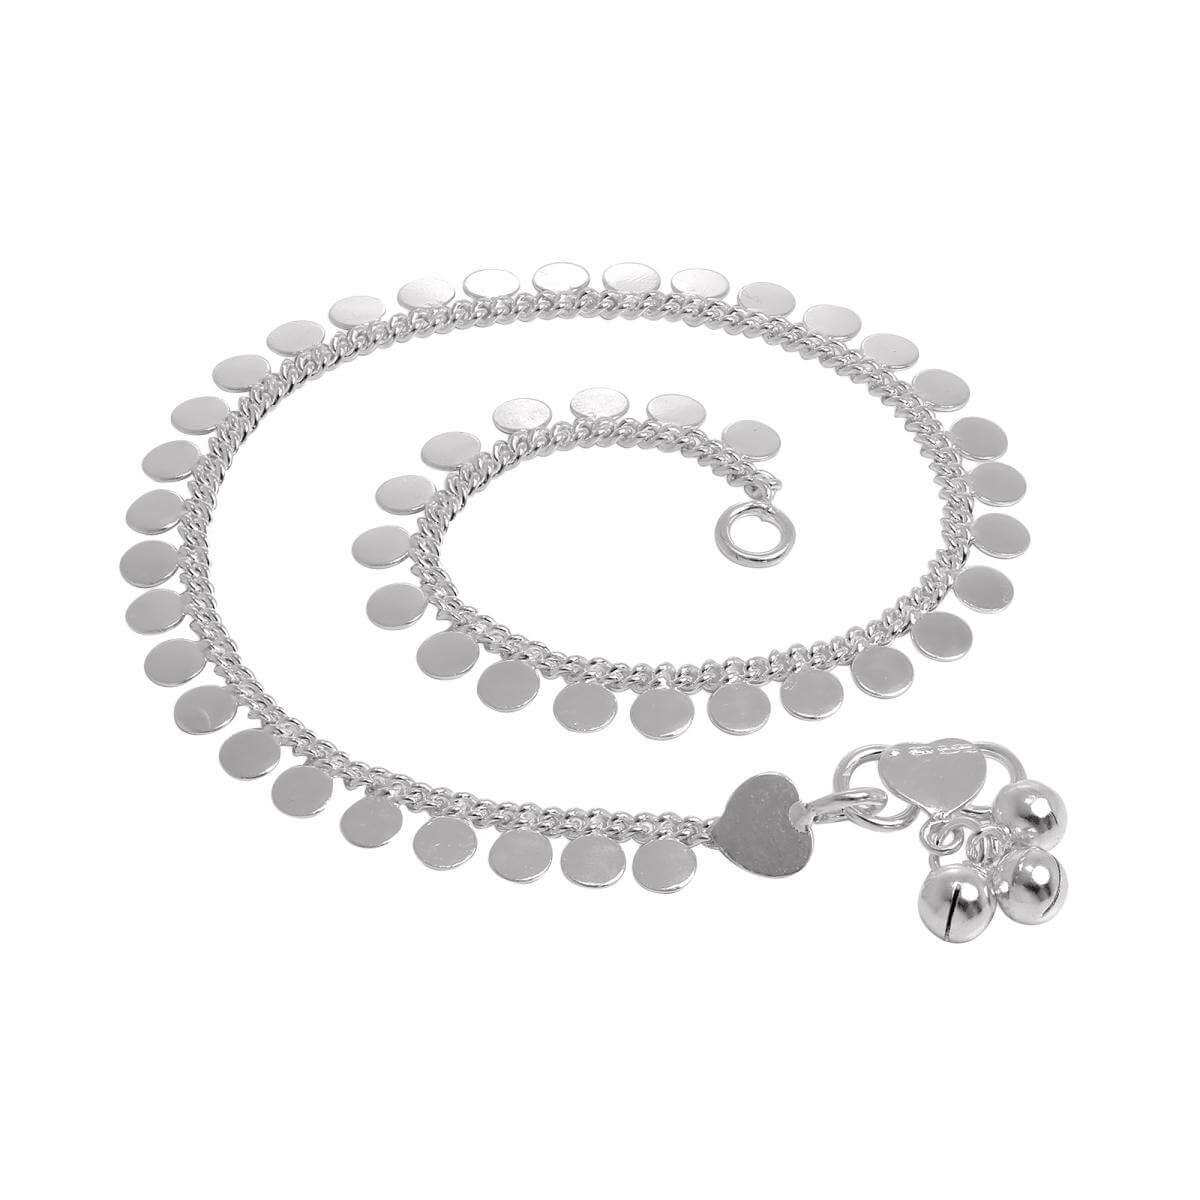 Sterling Silver Anklet with Round Disc Charms